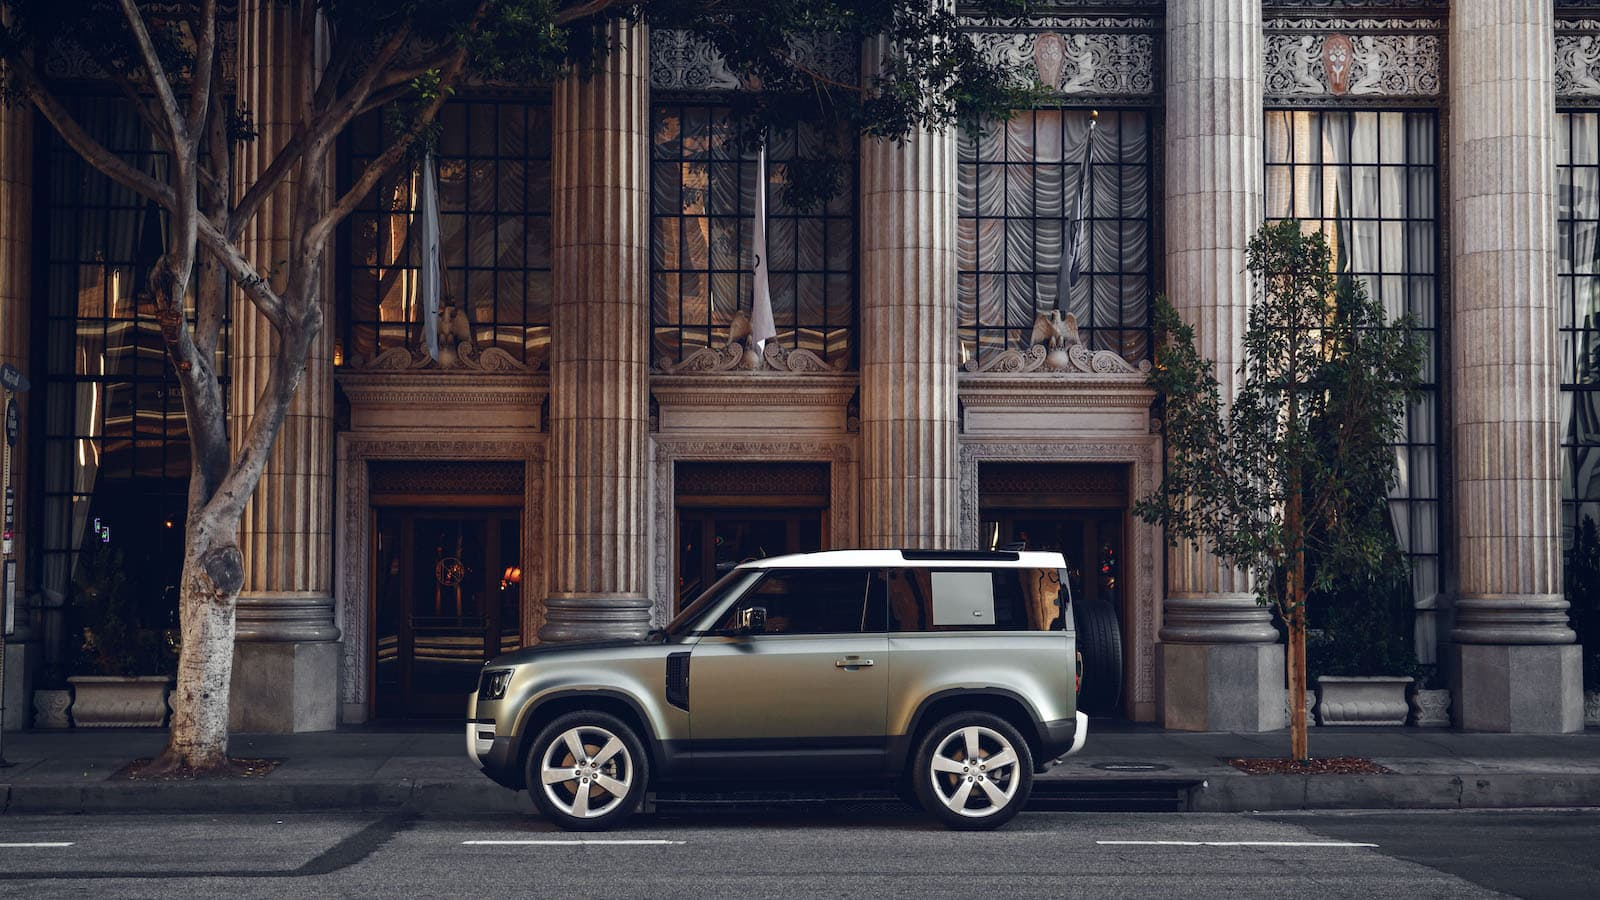 2020 Land Rover Defender 90 in the city | The Car Expert